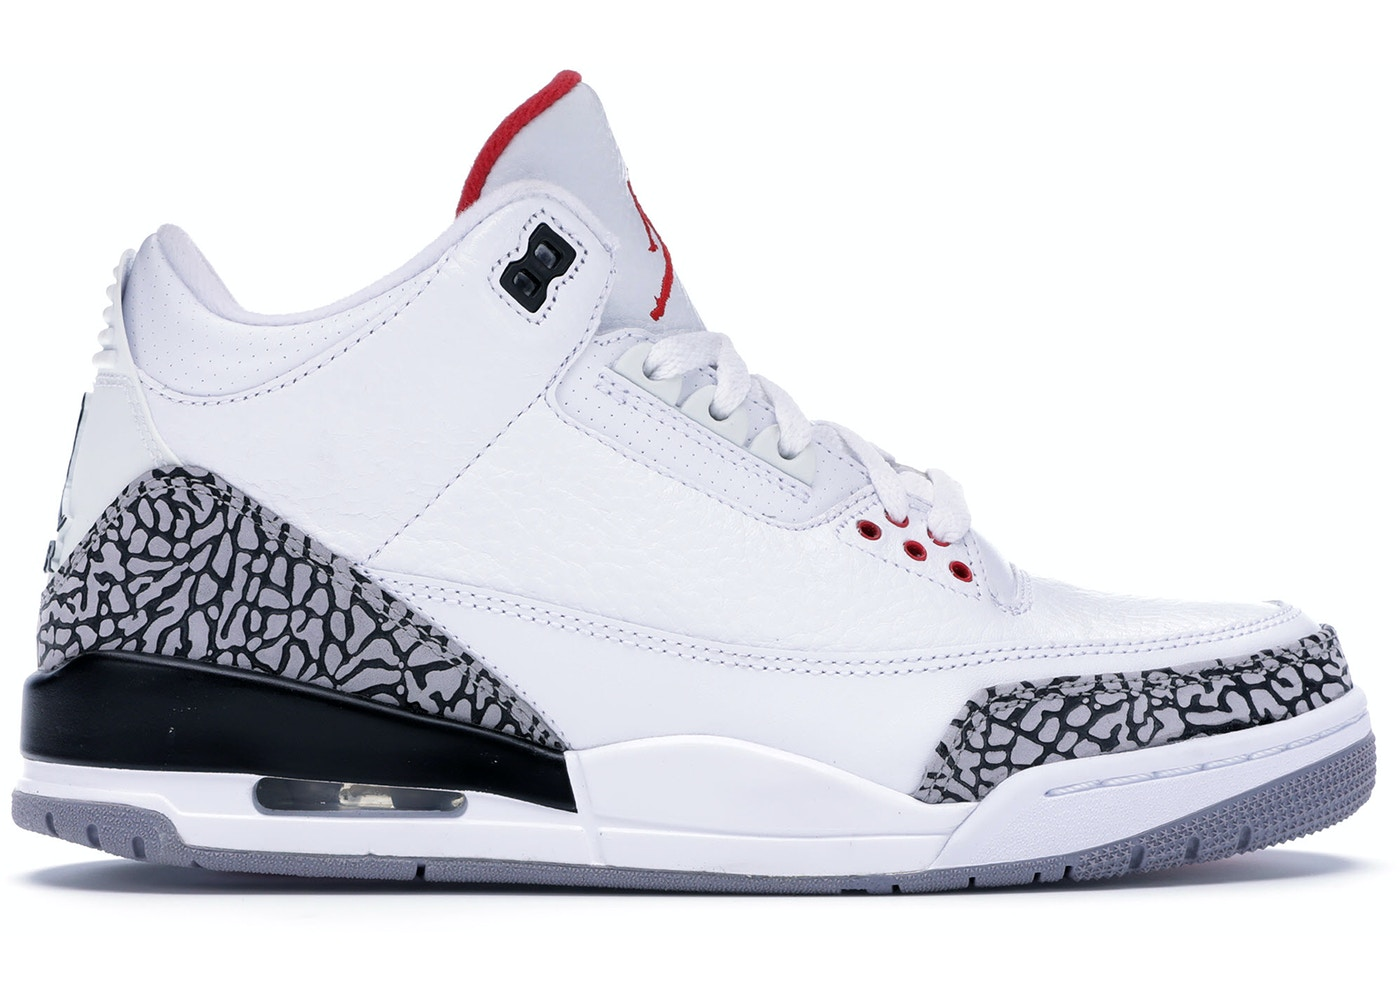 new concept a87a1 2a5da Jordan 3 Retro White Cement (2011)